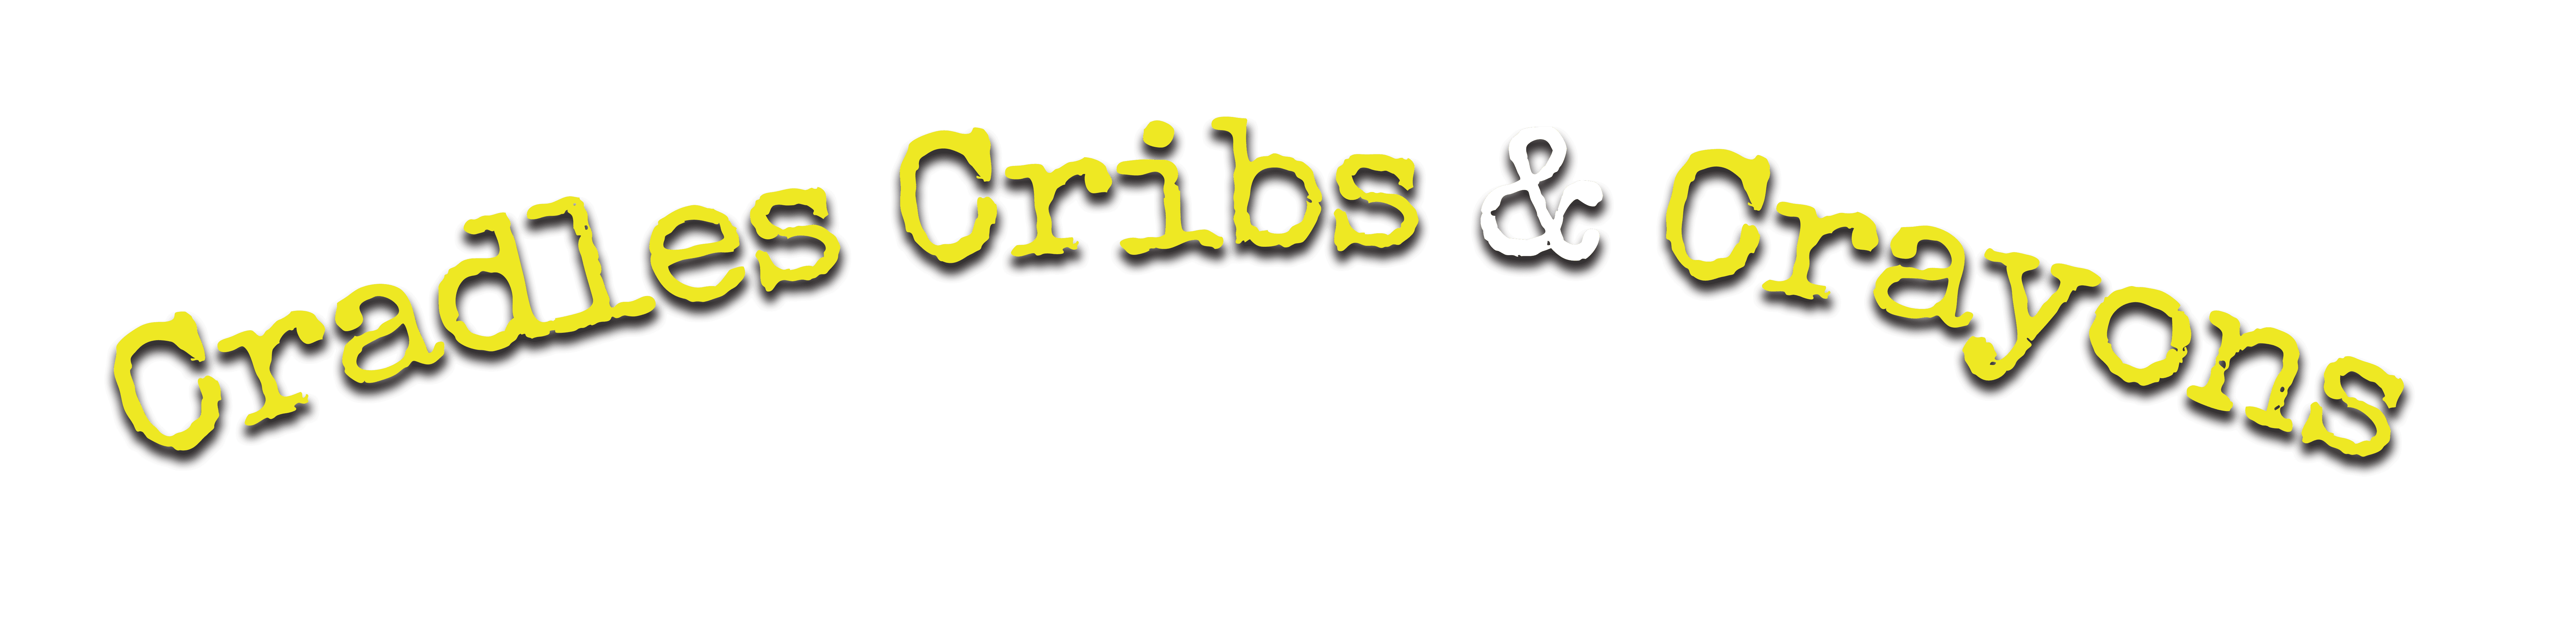 Cradles Cribs & Crayons - Logo